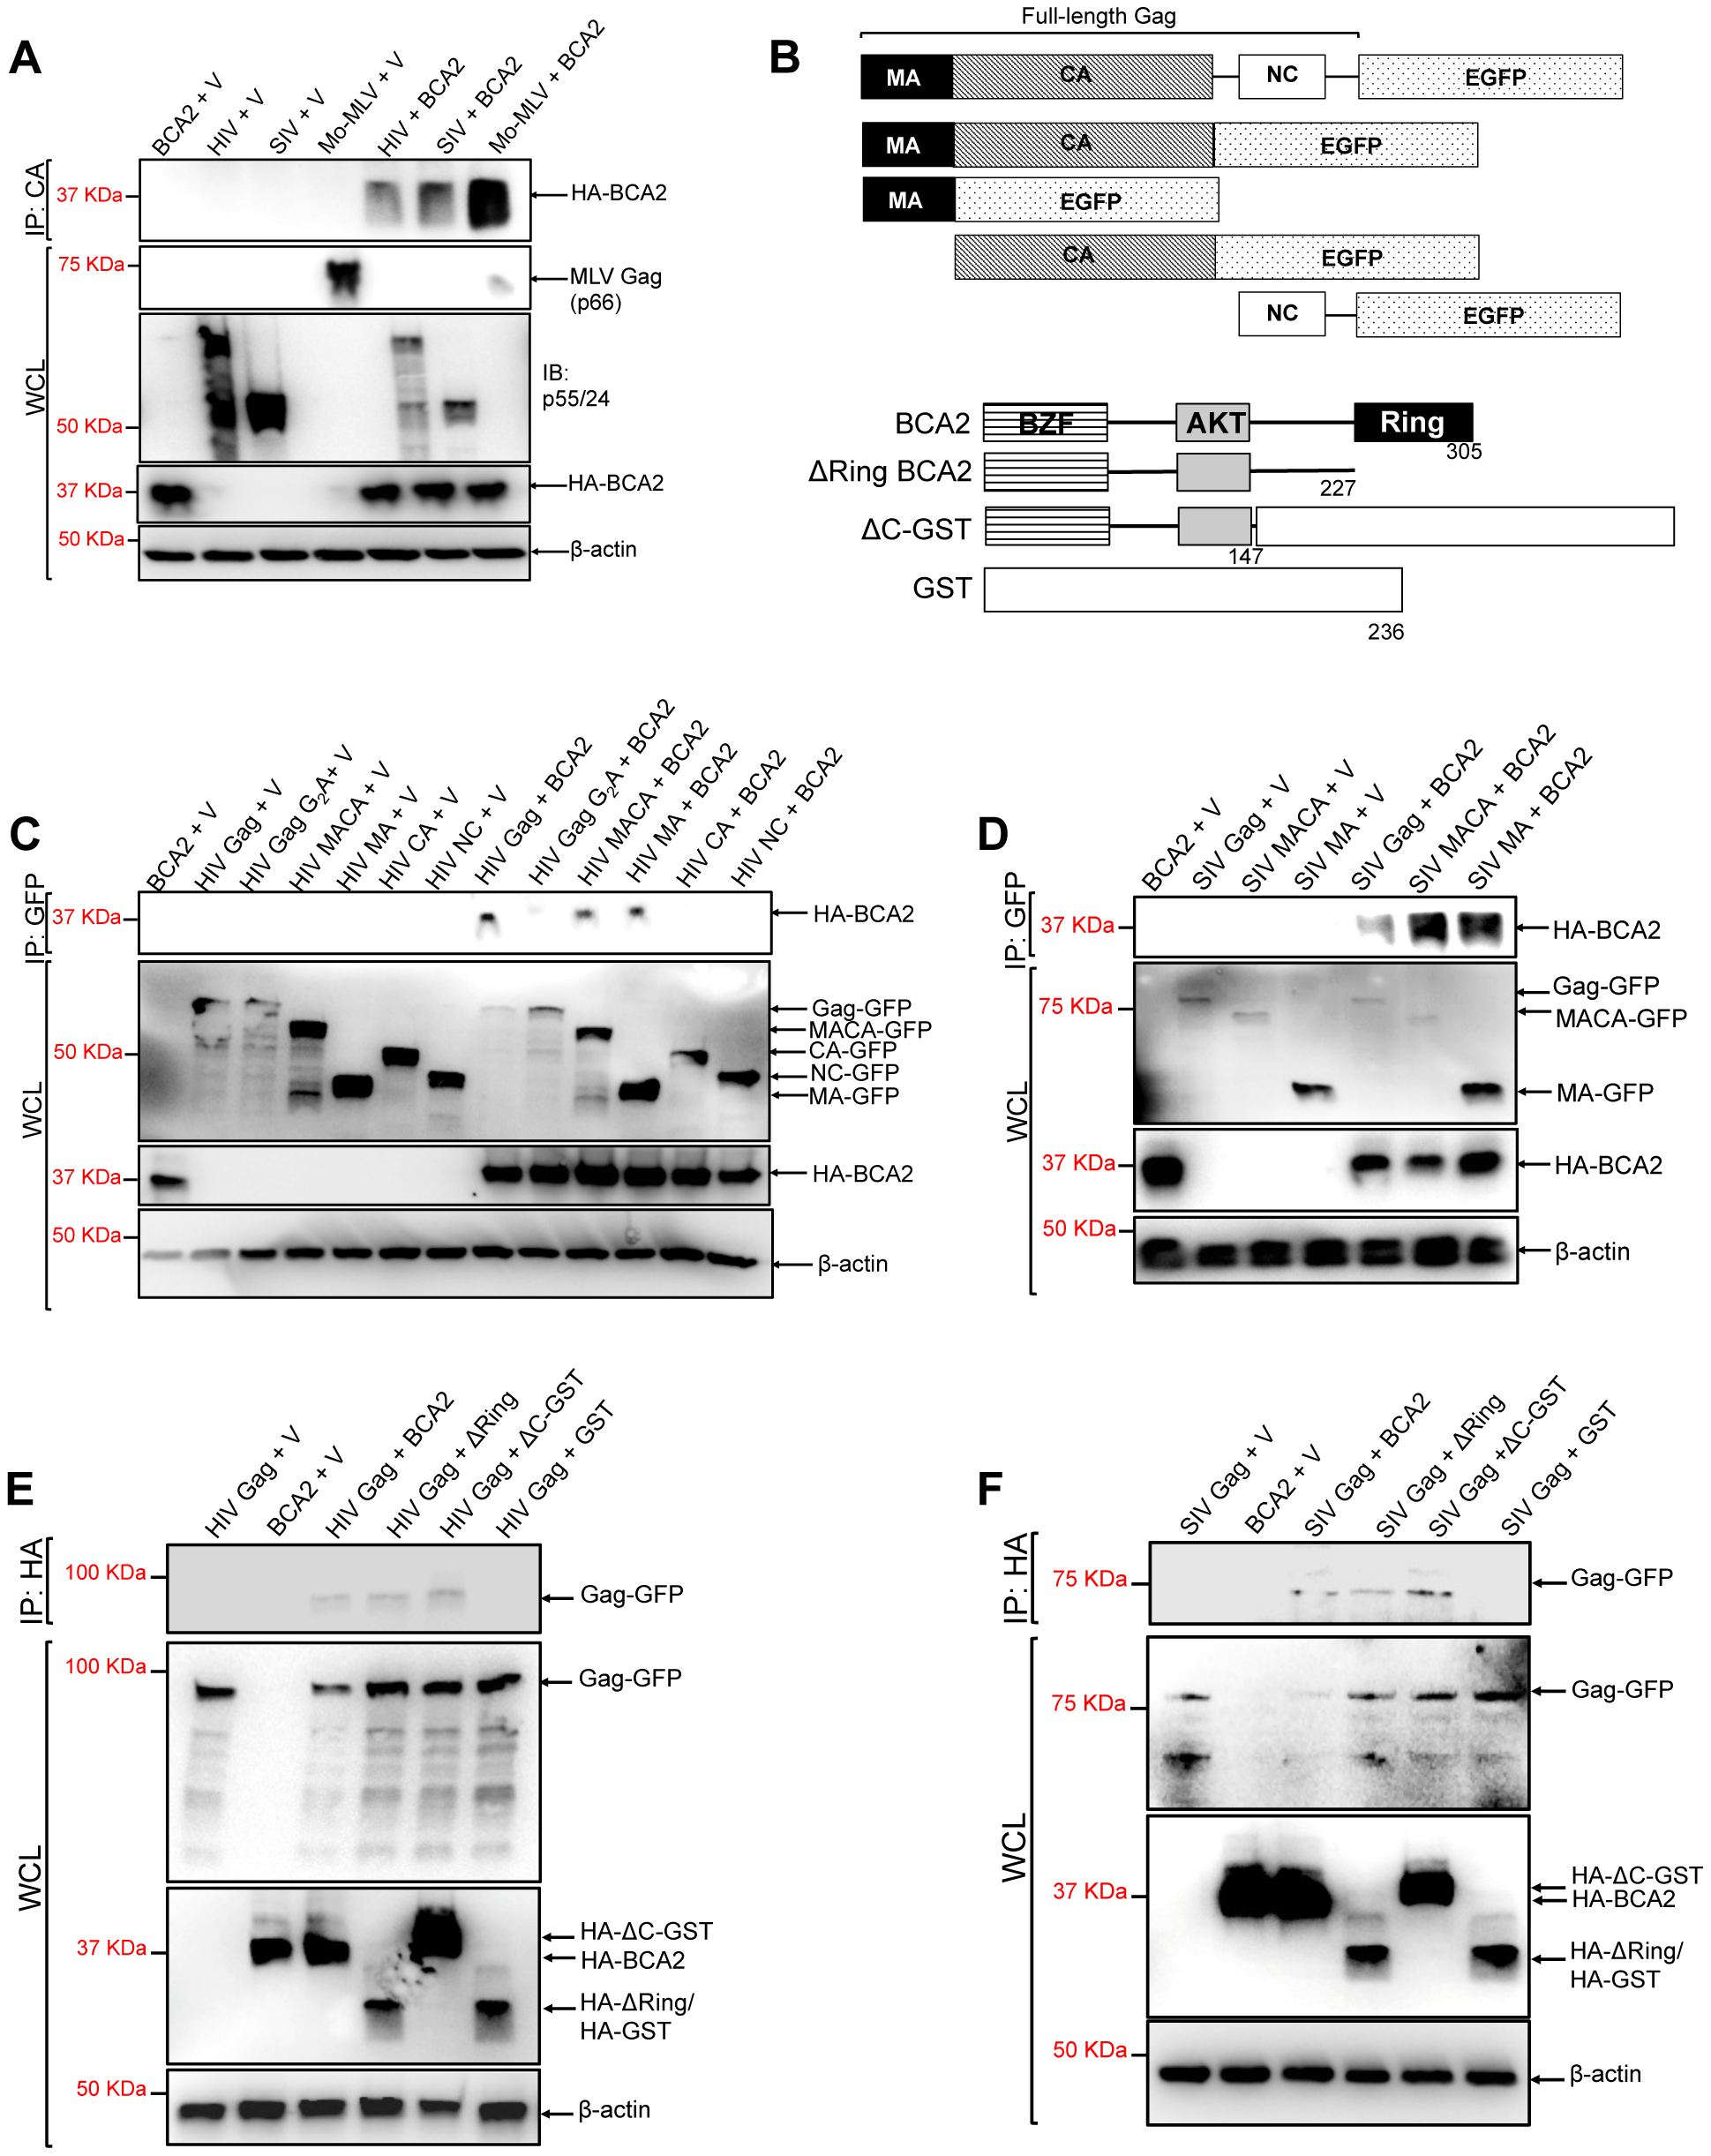 The N-terminus of BCA2 interacts with the Matrix region of Gag.